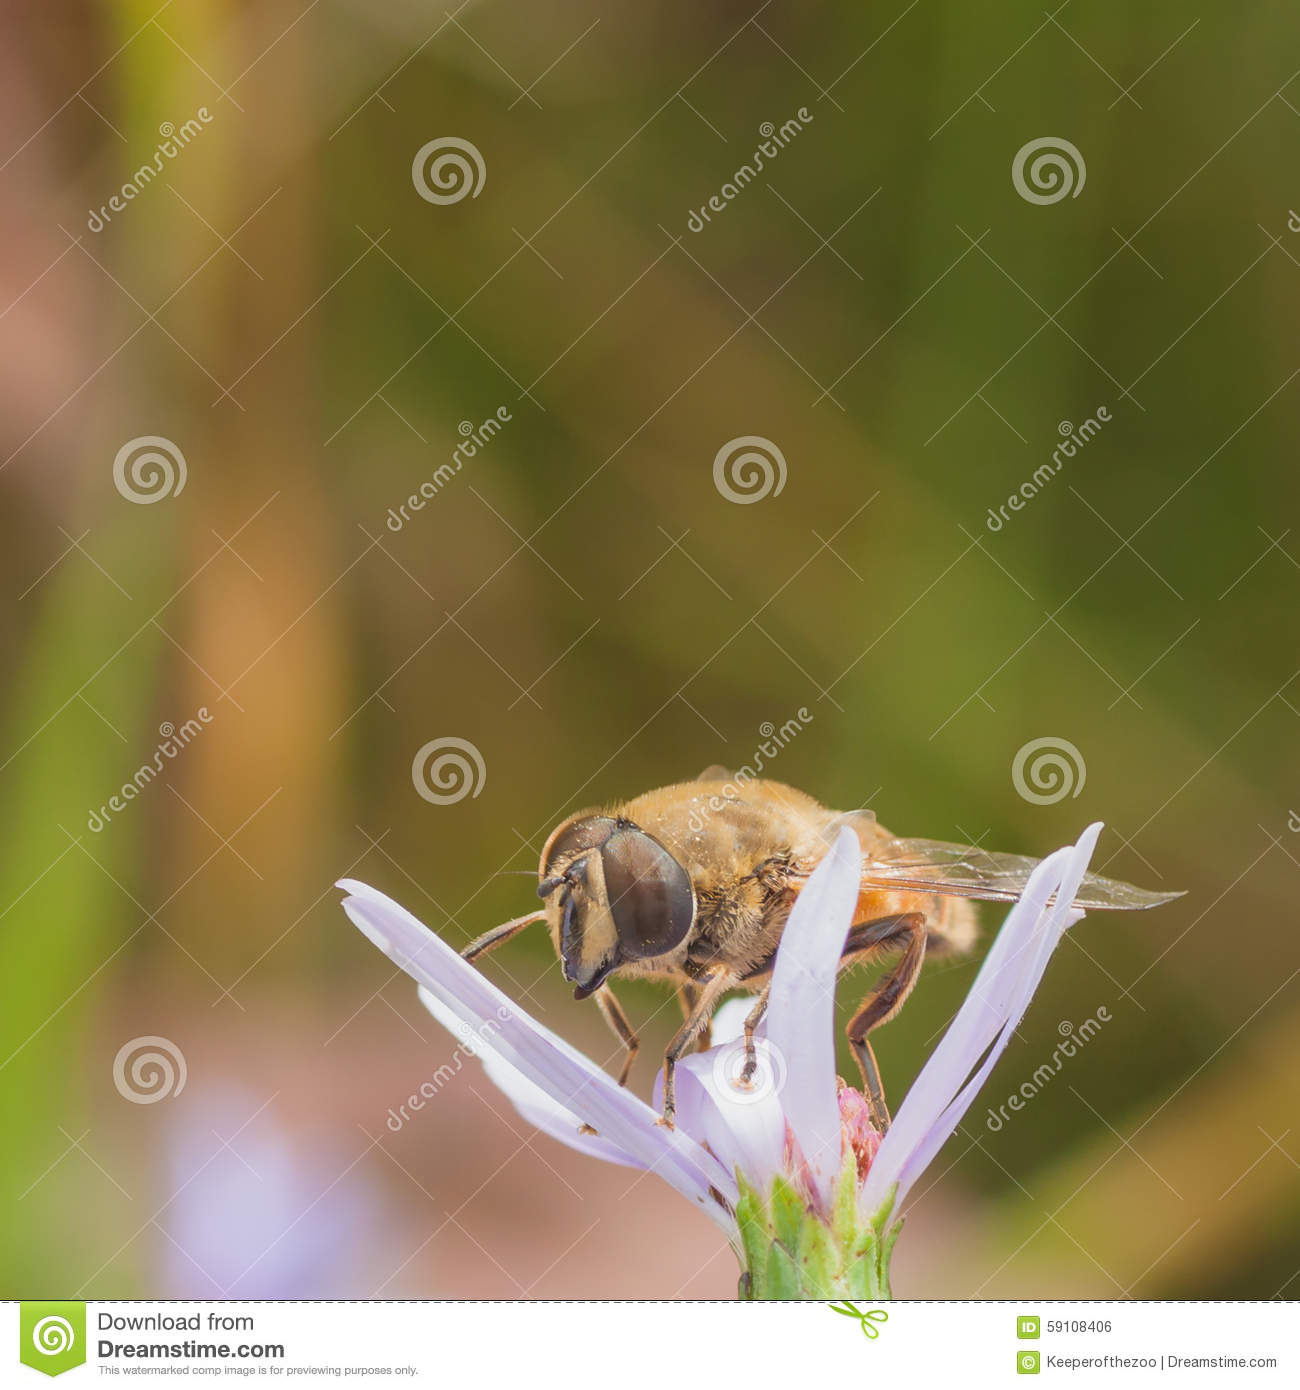 Hoverfly on a Flower